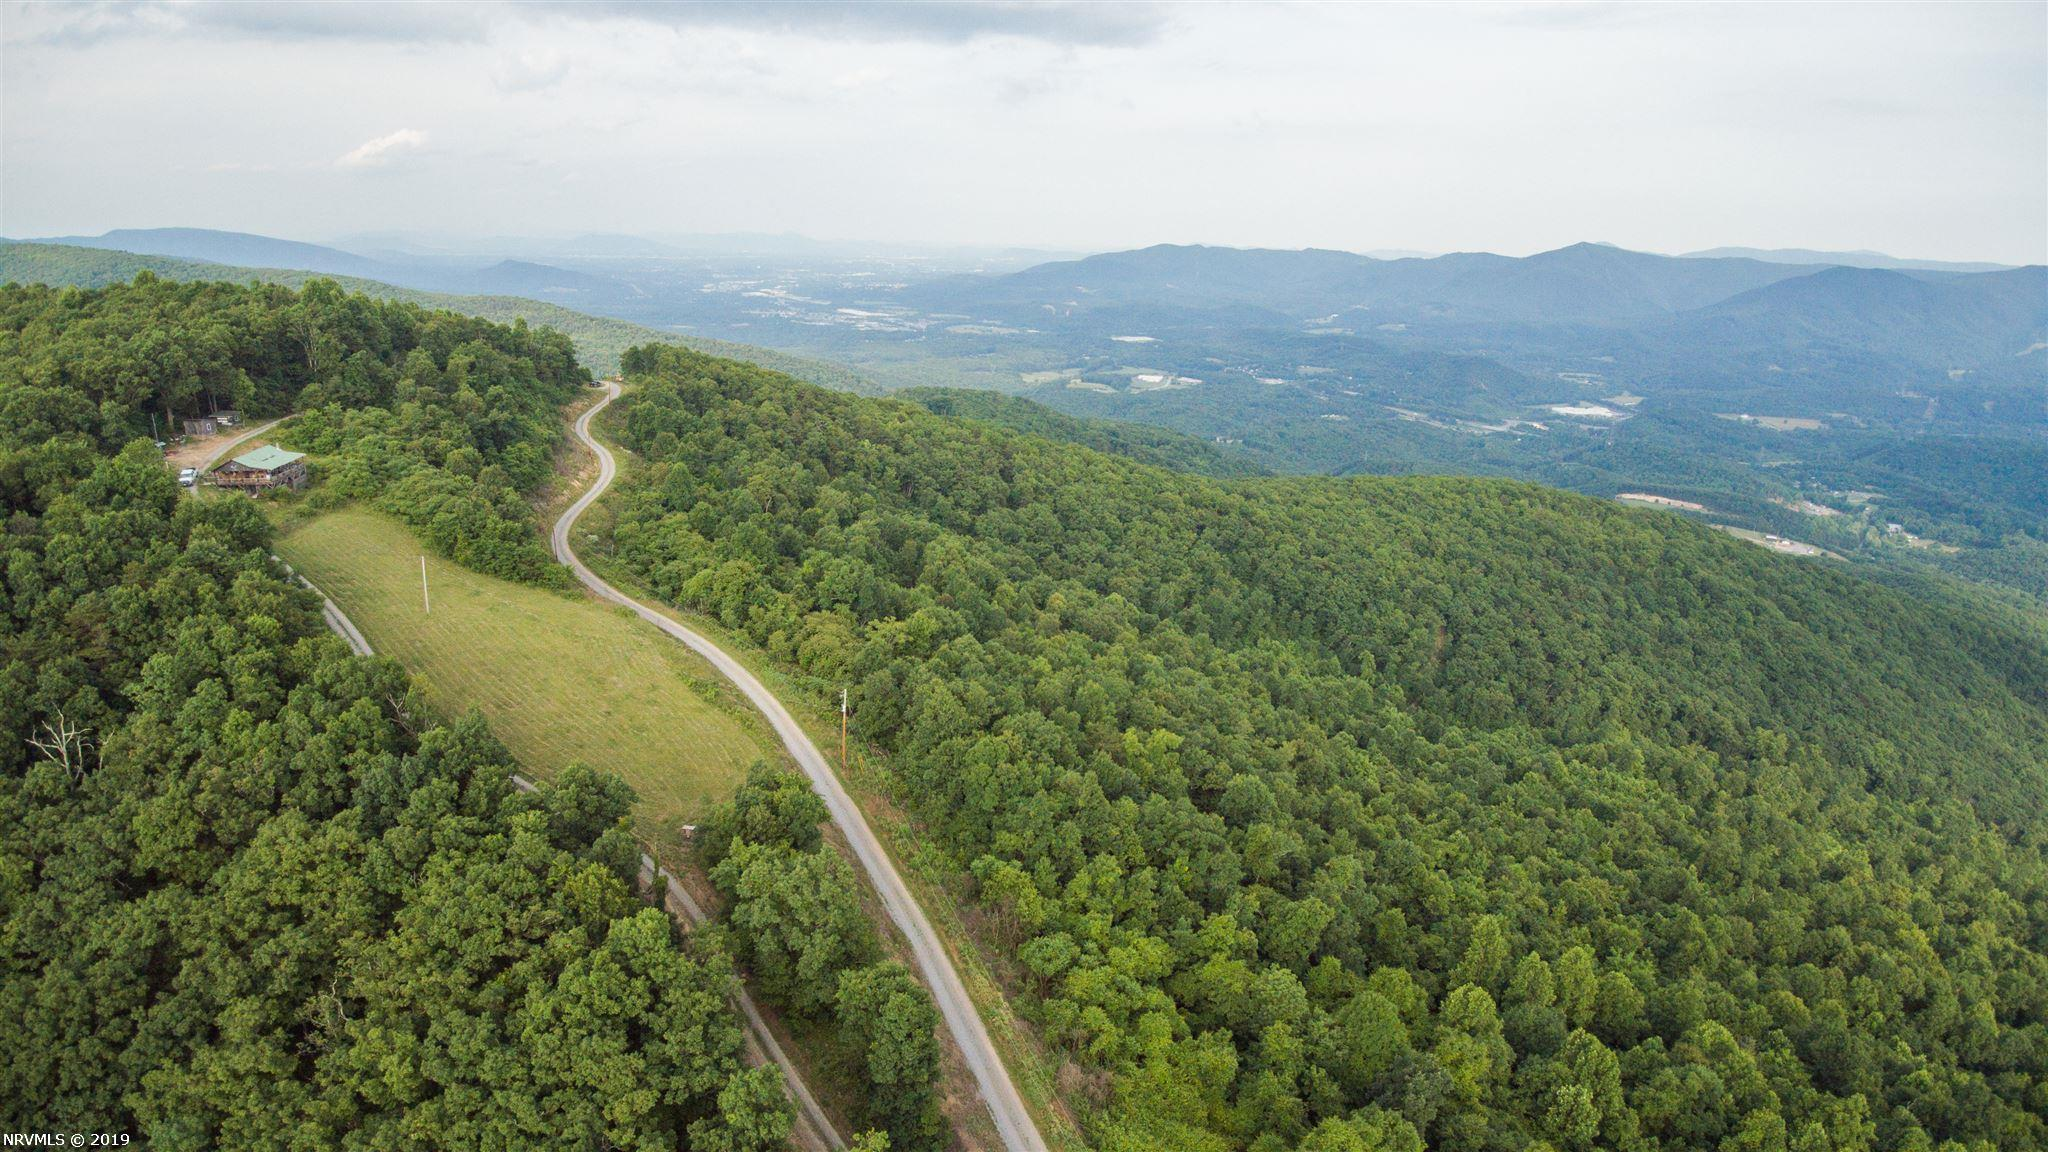 Gorgeous mountain top retreat conveniently located between Blacksburg and Roanoke. Ideal recreation or hunting property. Miles of roads and ATV trails with breathtaking views.